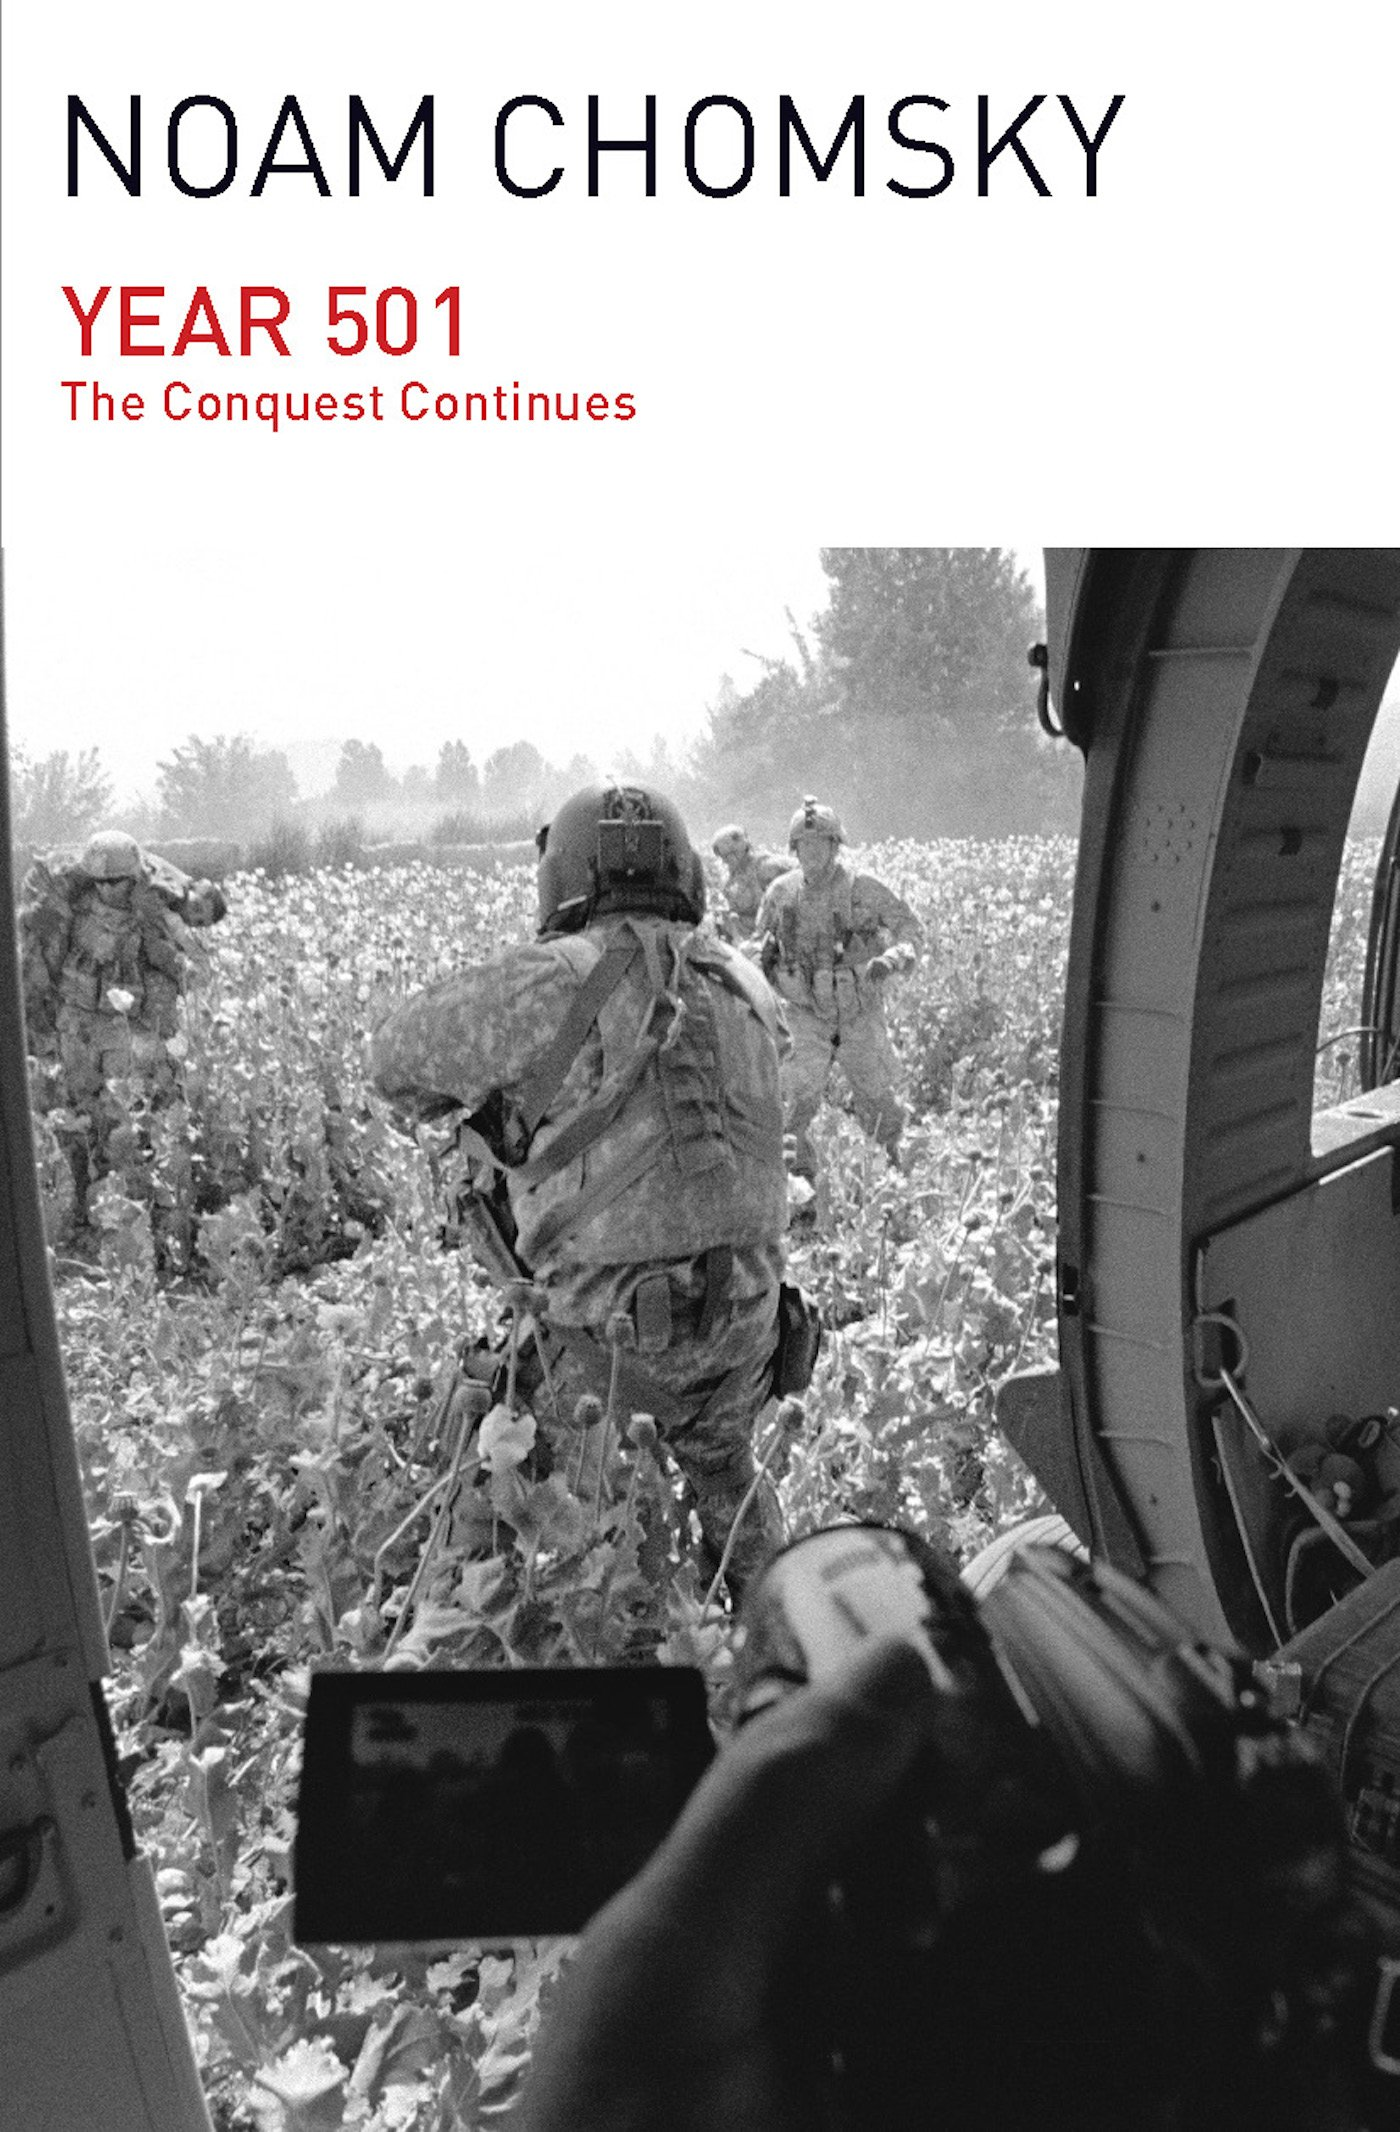 Year 501: The Conquest Continues: Noam Chomsky: 9781608464074: Amazon:  Books